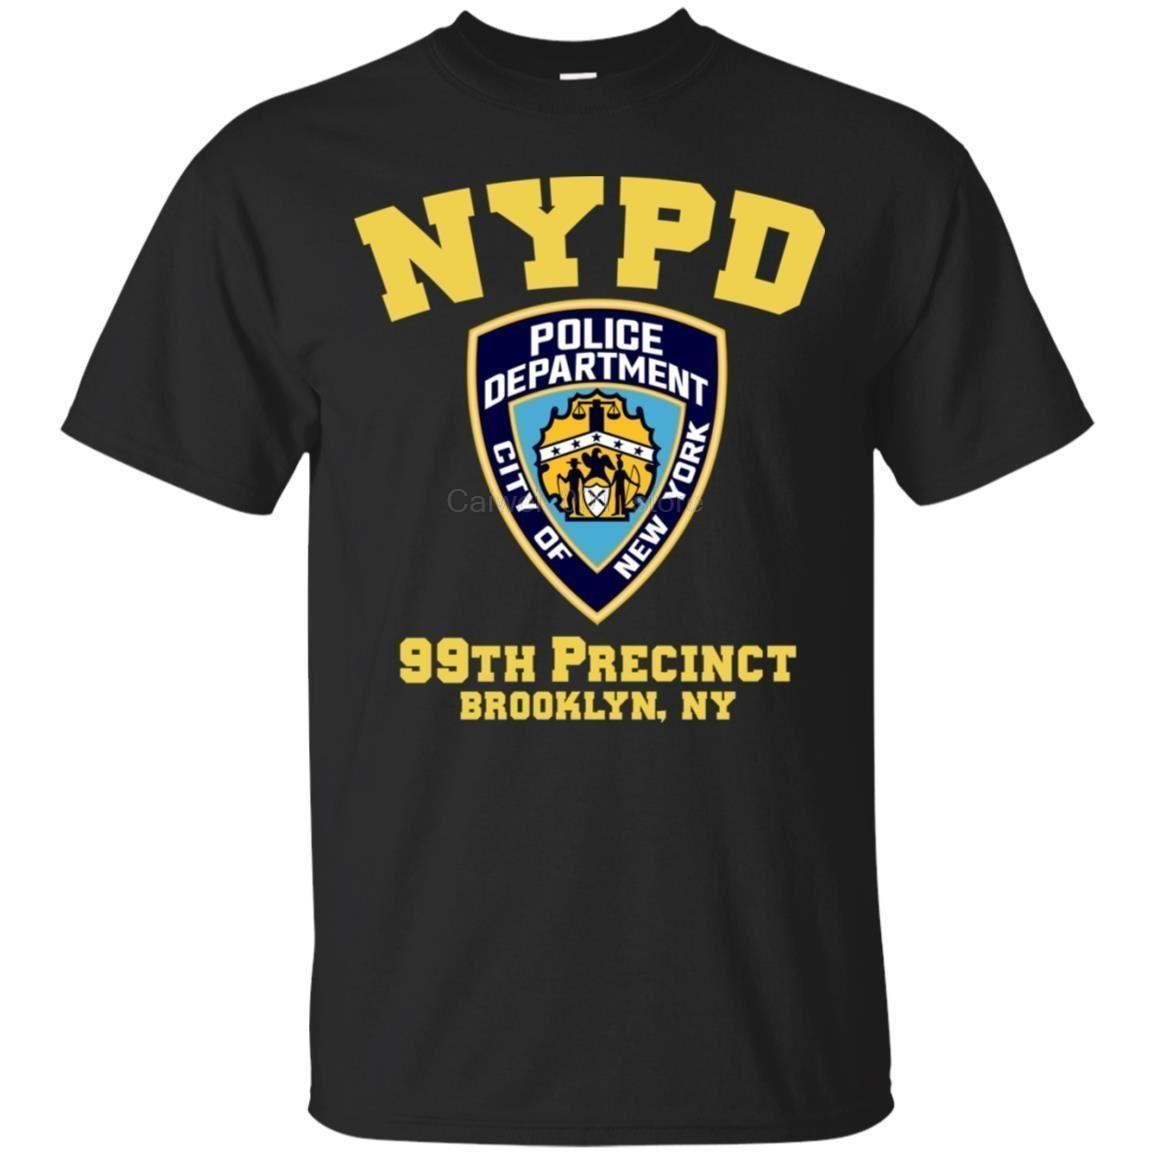 Men's 2019 Fashion Style T Shirt NYPD POLICE DEPARTMENT CITY OF NEW YORK 99TH PRECINCT BROOKLYN NY Short Sleeve Tshirt Trend